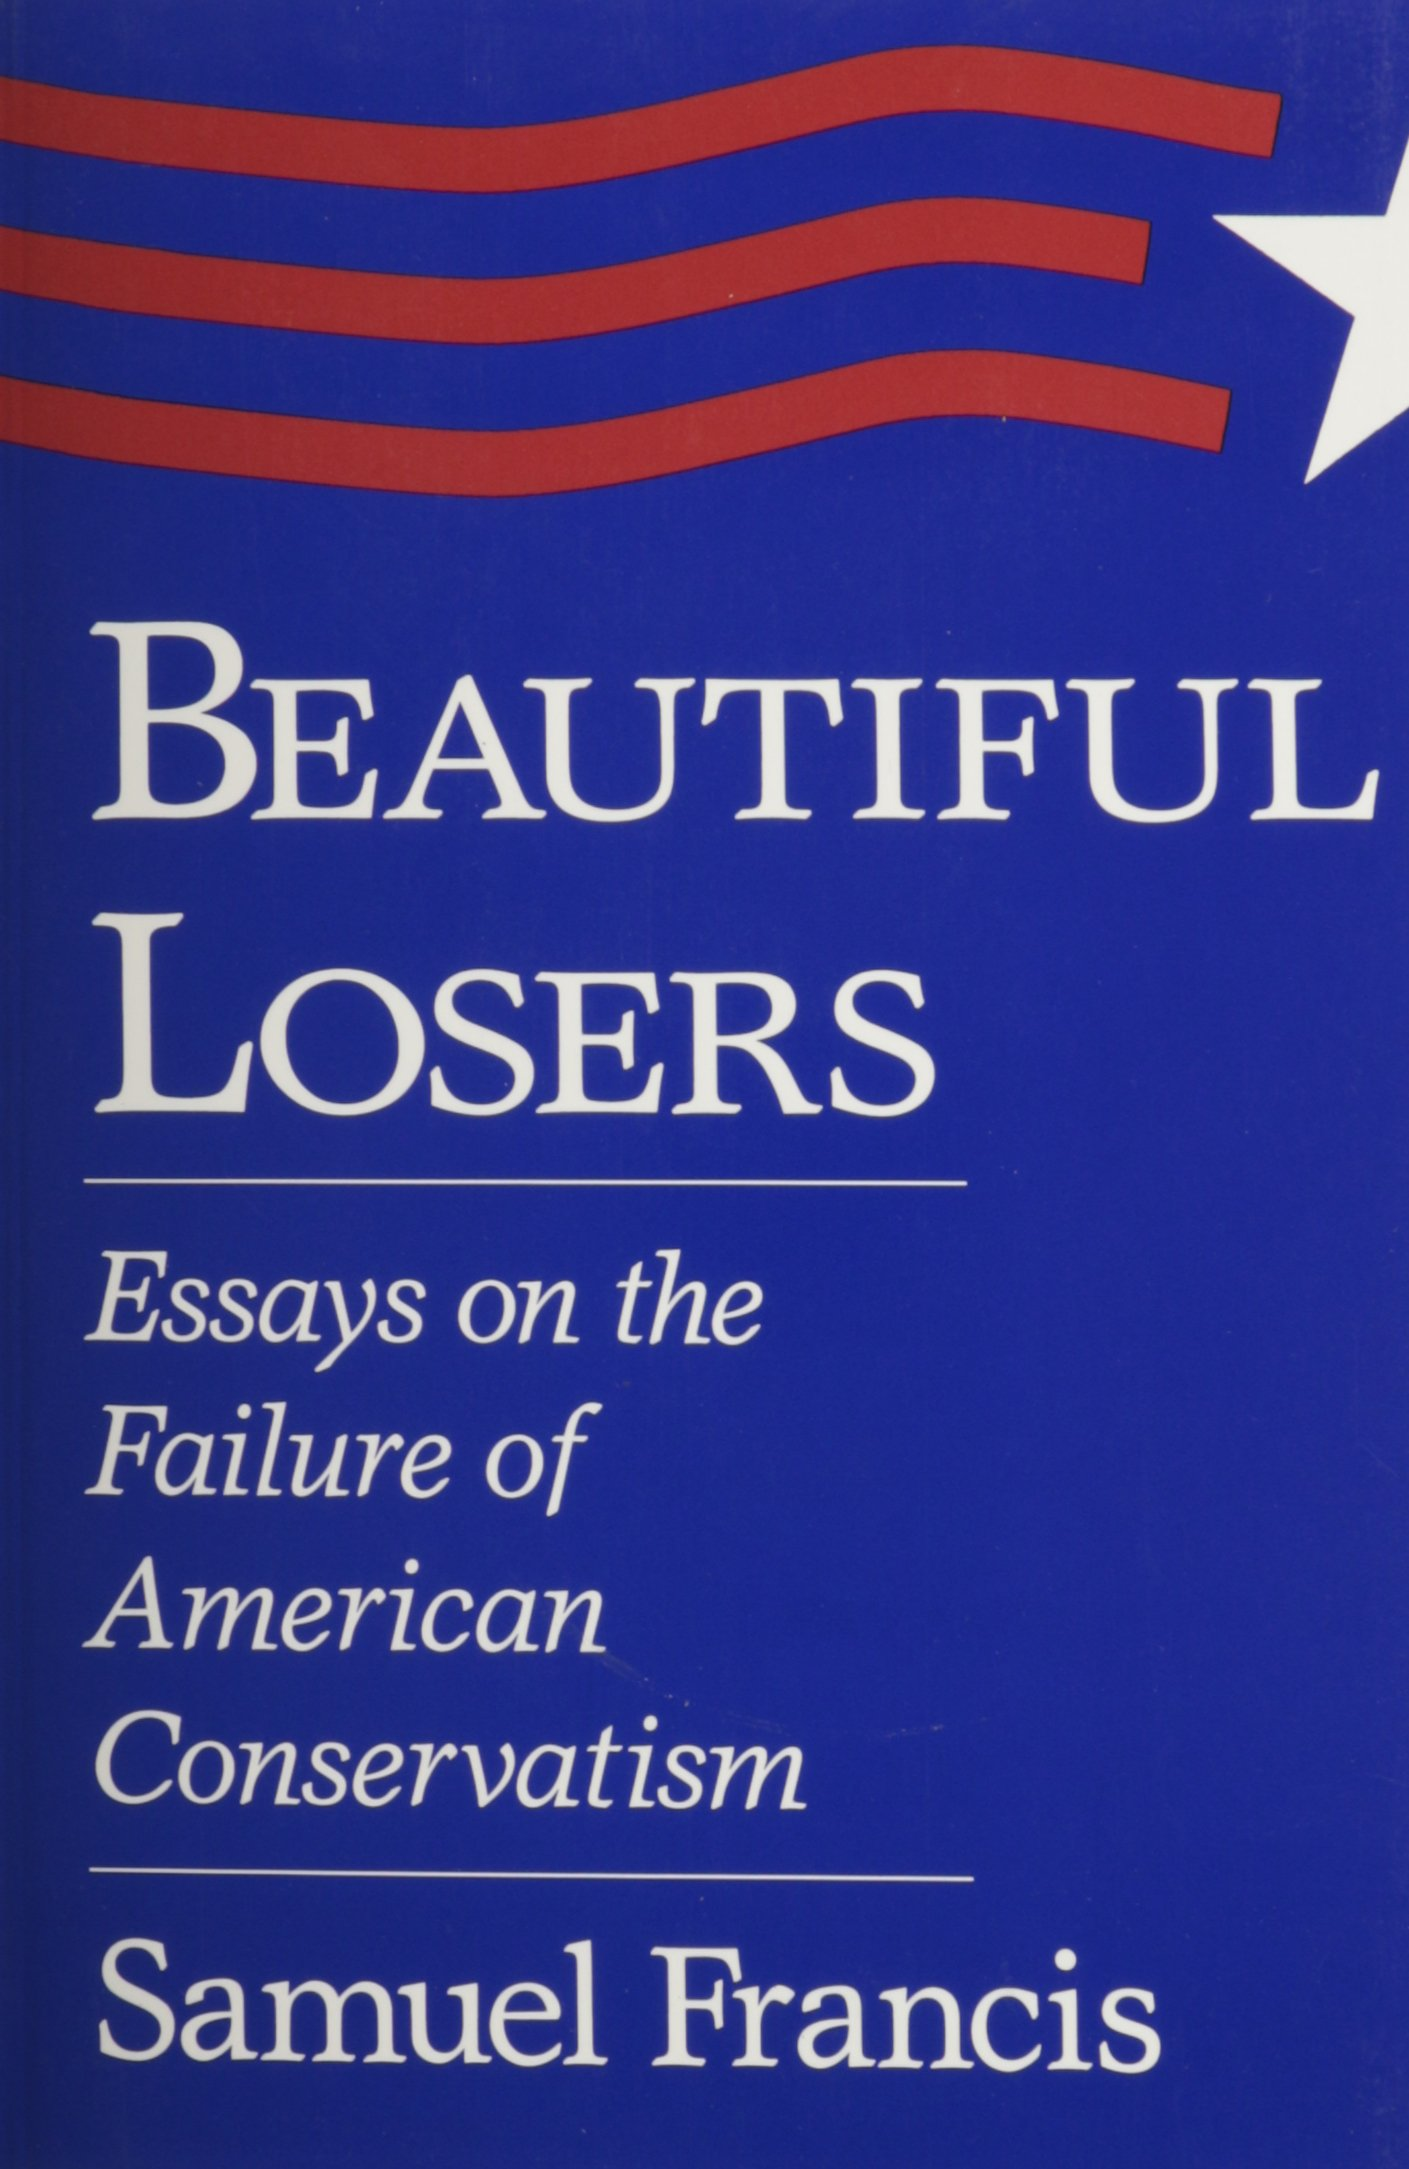 beautiful losers essays on the failure of american conservatism beautiful losers essays on the failure of american conservatism samuel francis 9780826209764 com books